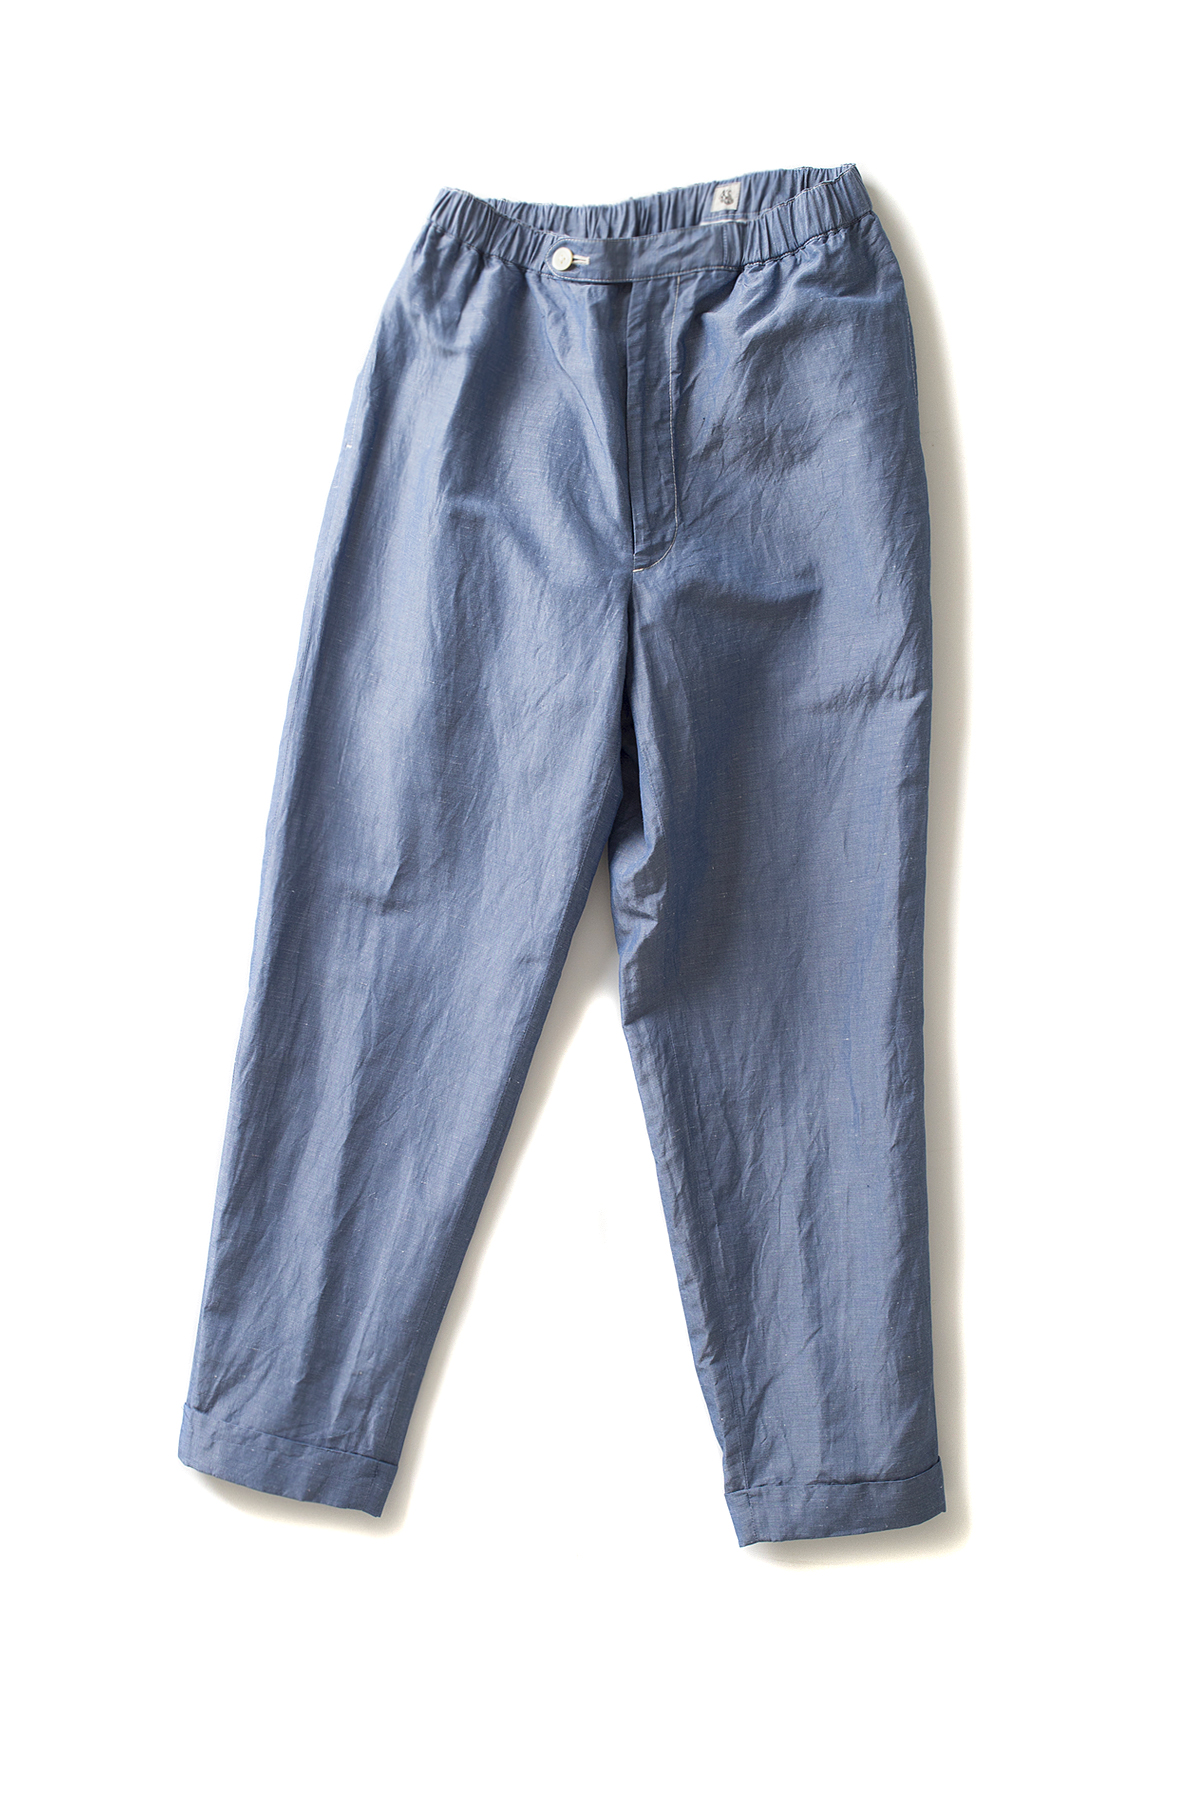 Kaptain Sunshine : Traveller Trousers (Blue)